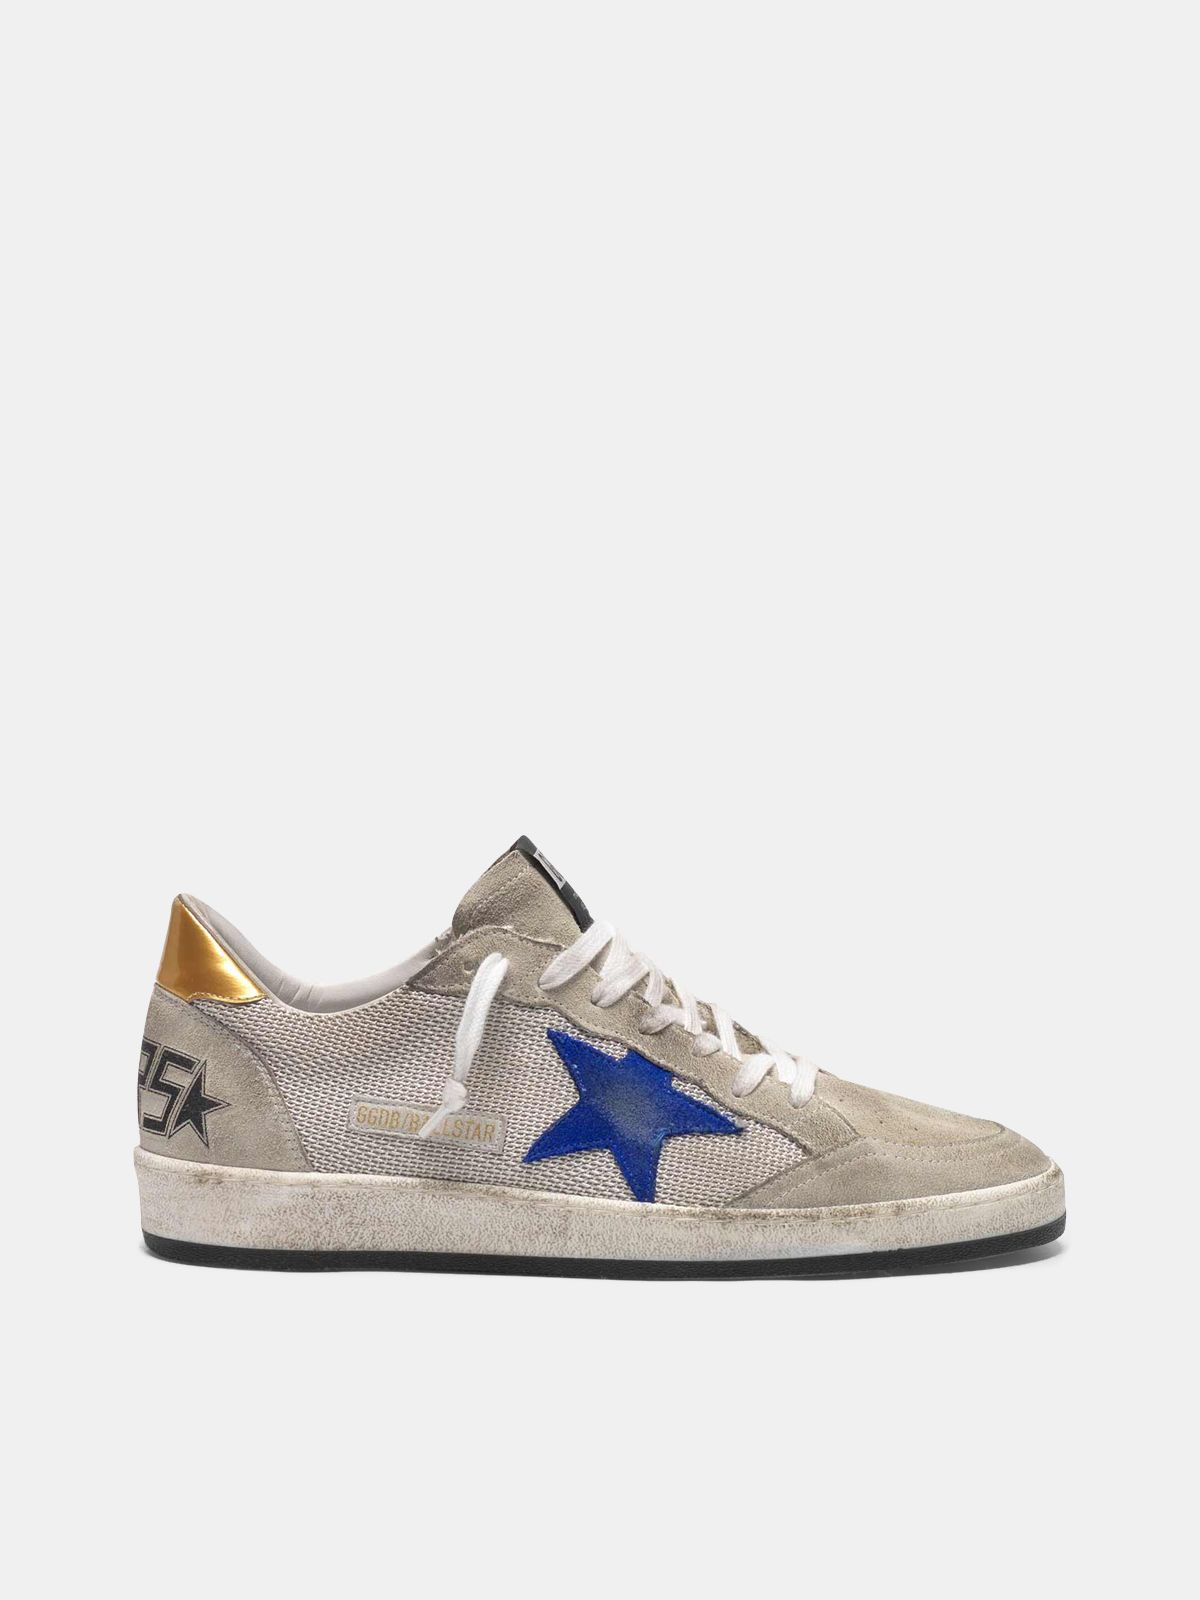 Golden Goose - Grey suede Ball Star sneakers with mesh inserts in